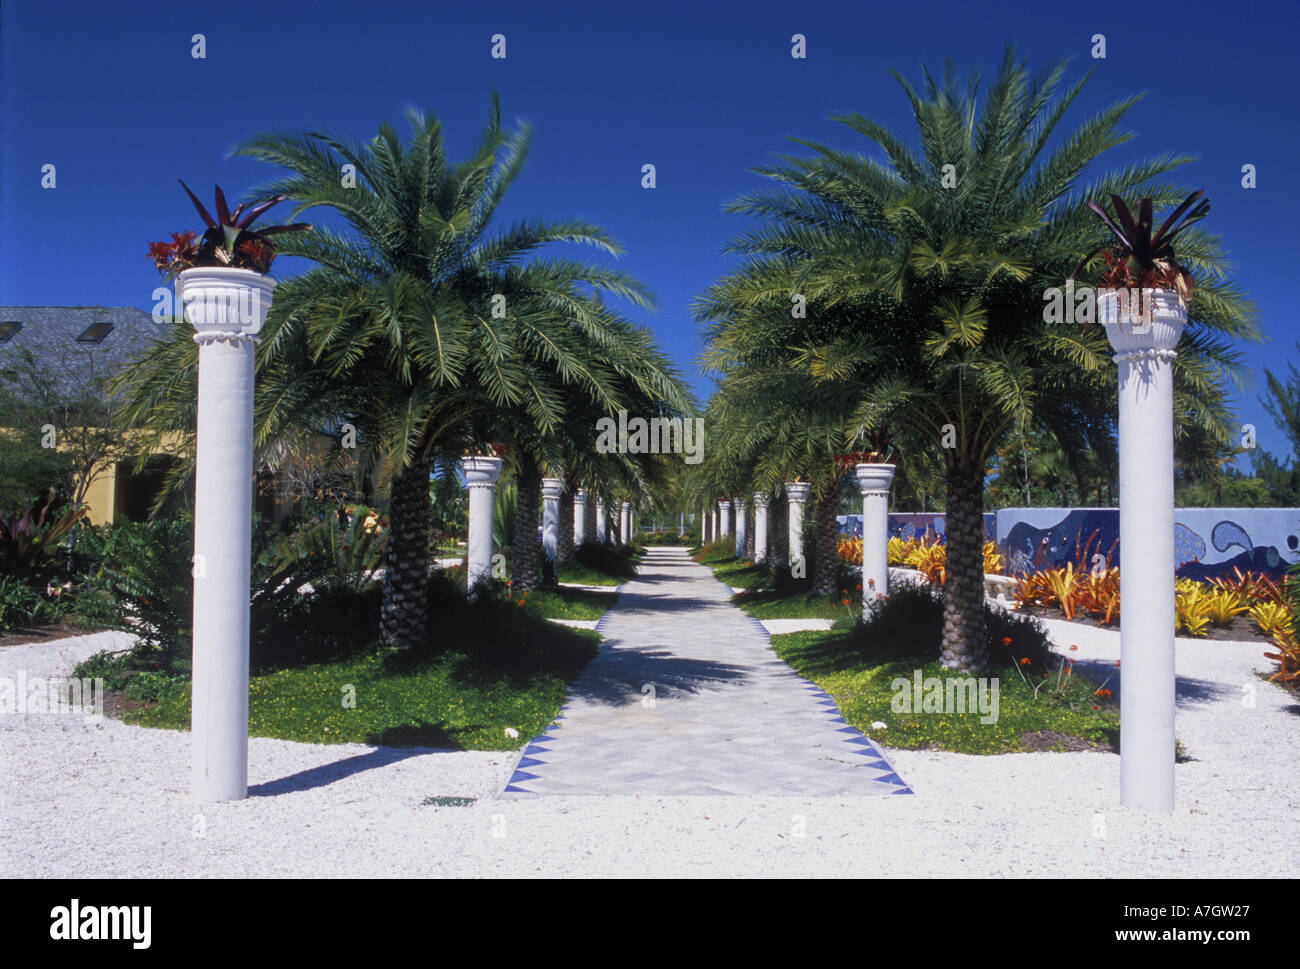 Date palm allee naples botanical garden naples fl usa - Botanical gardens naples florida ...